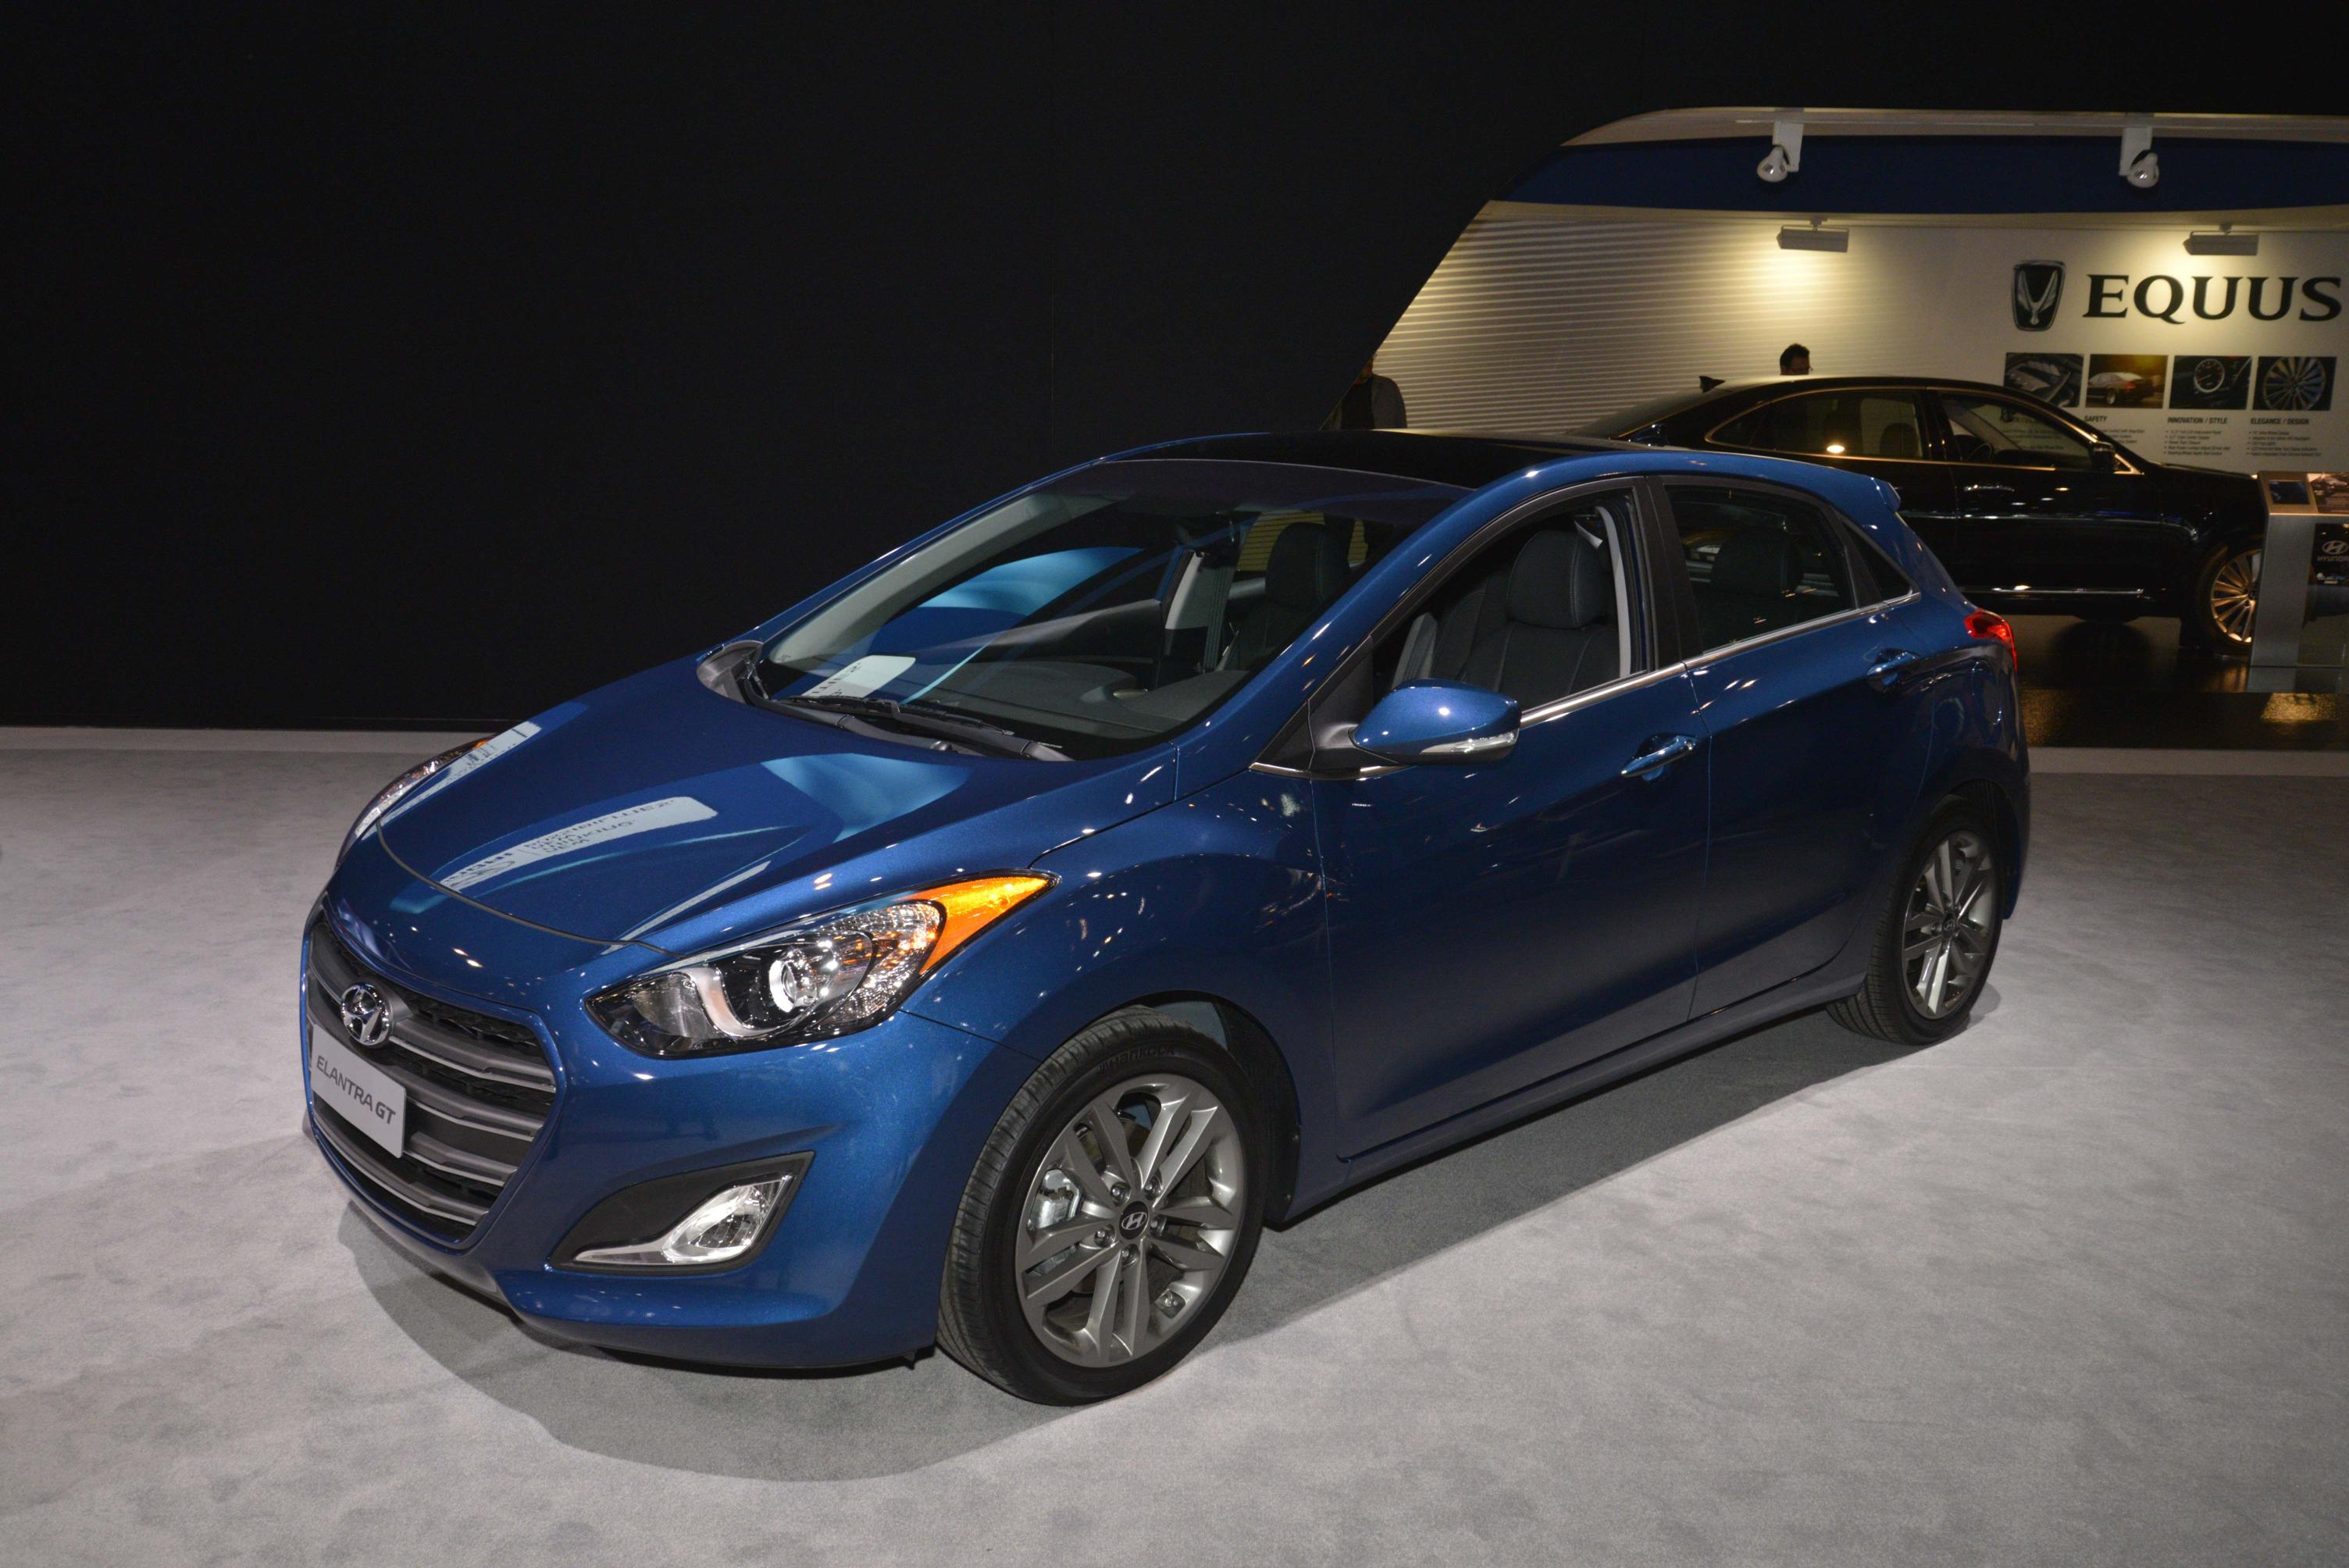 2016 hyundai elantra gt sports refreshed look and new tech. Black Bedroom Furniture Sets. Home Design Ideas